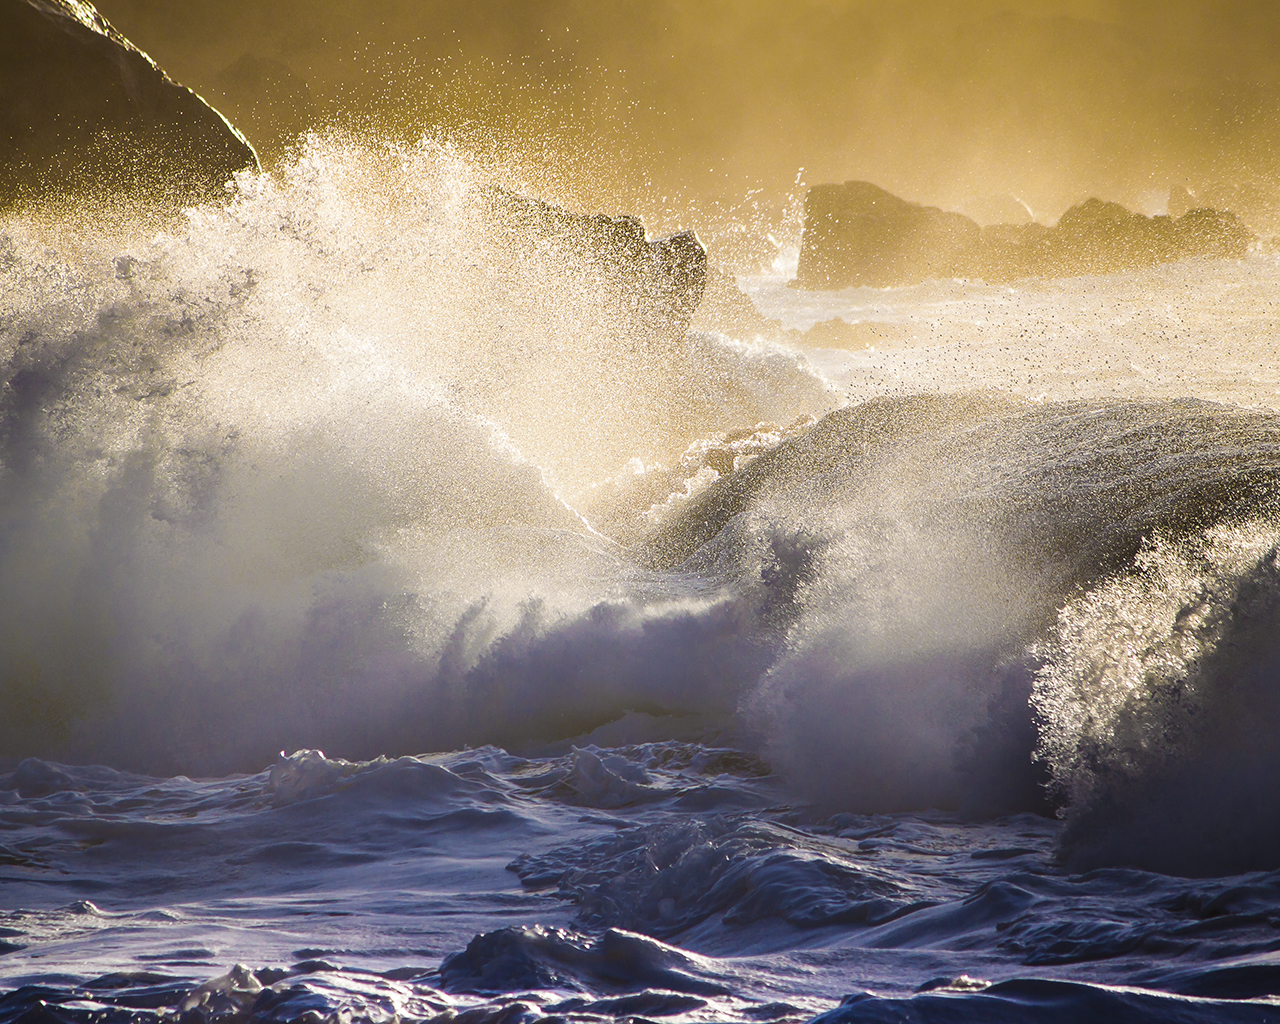 Large Waves Hit The Rocks Water Wallpaper